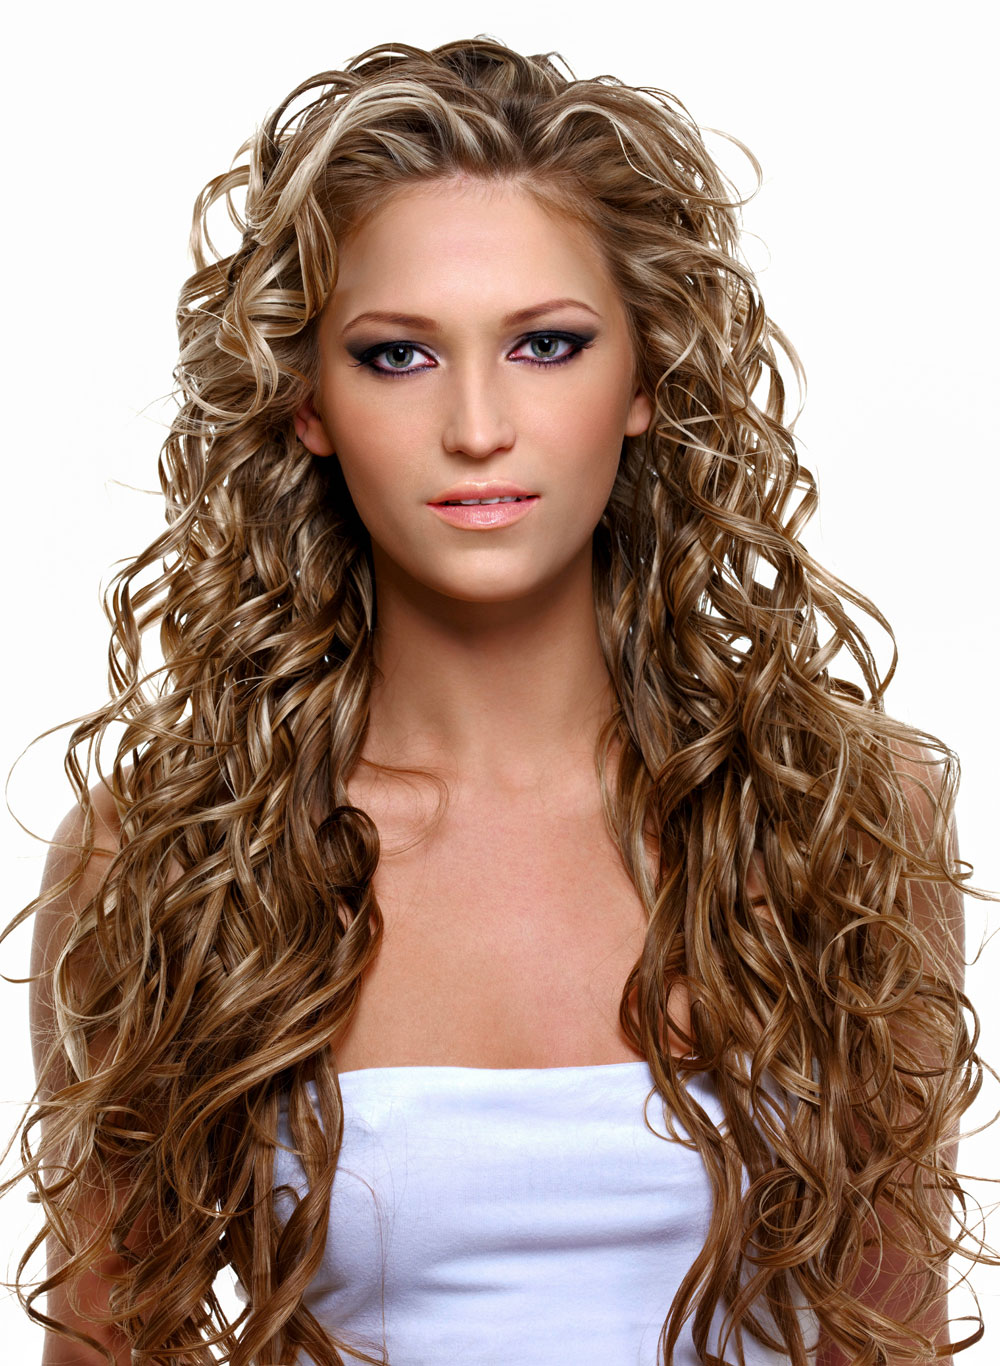 Frisuren Lange Haare Locken Blond Locken Frisuren Für Lockiges